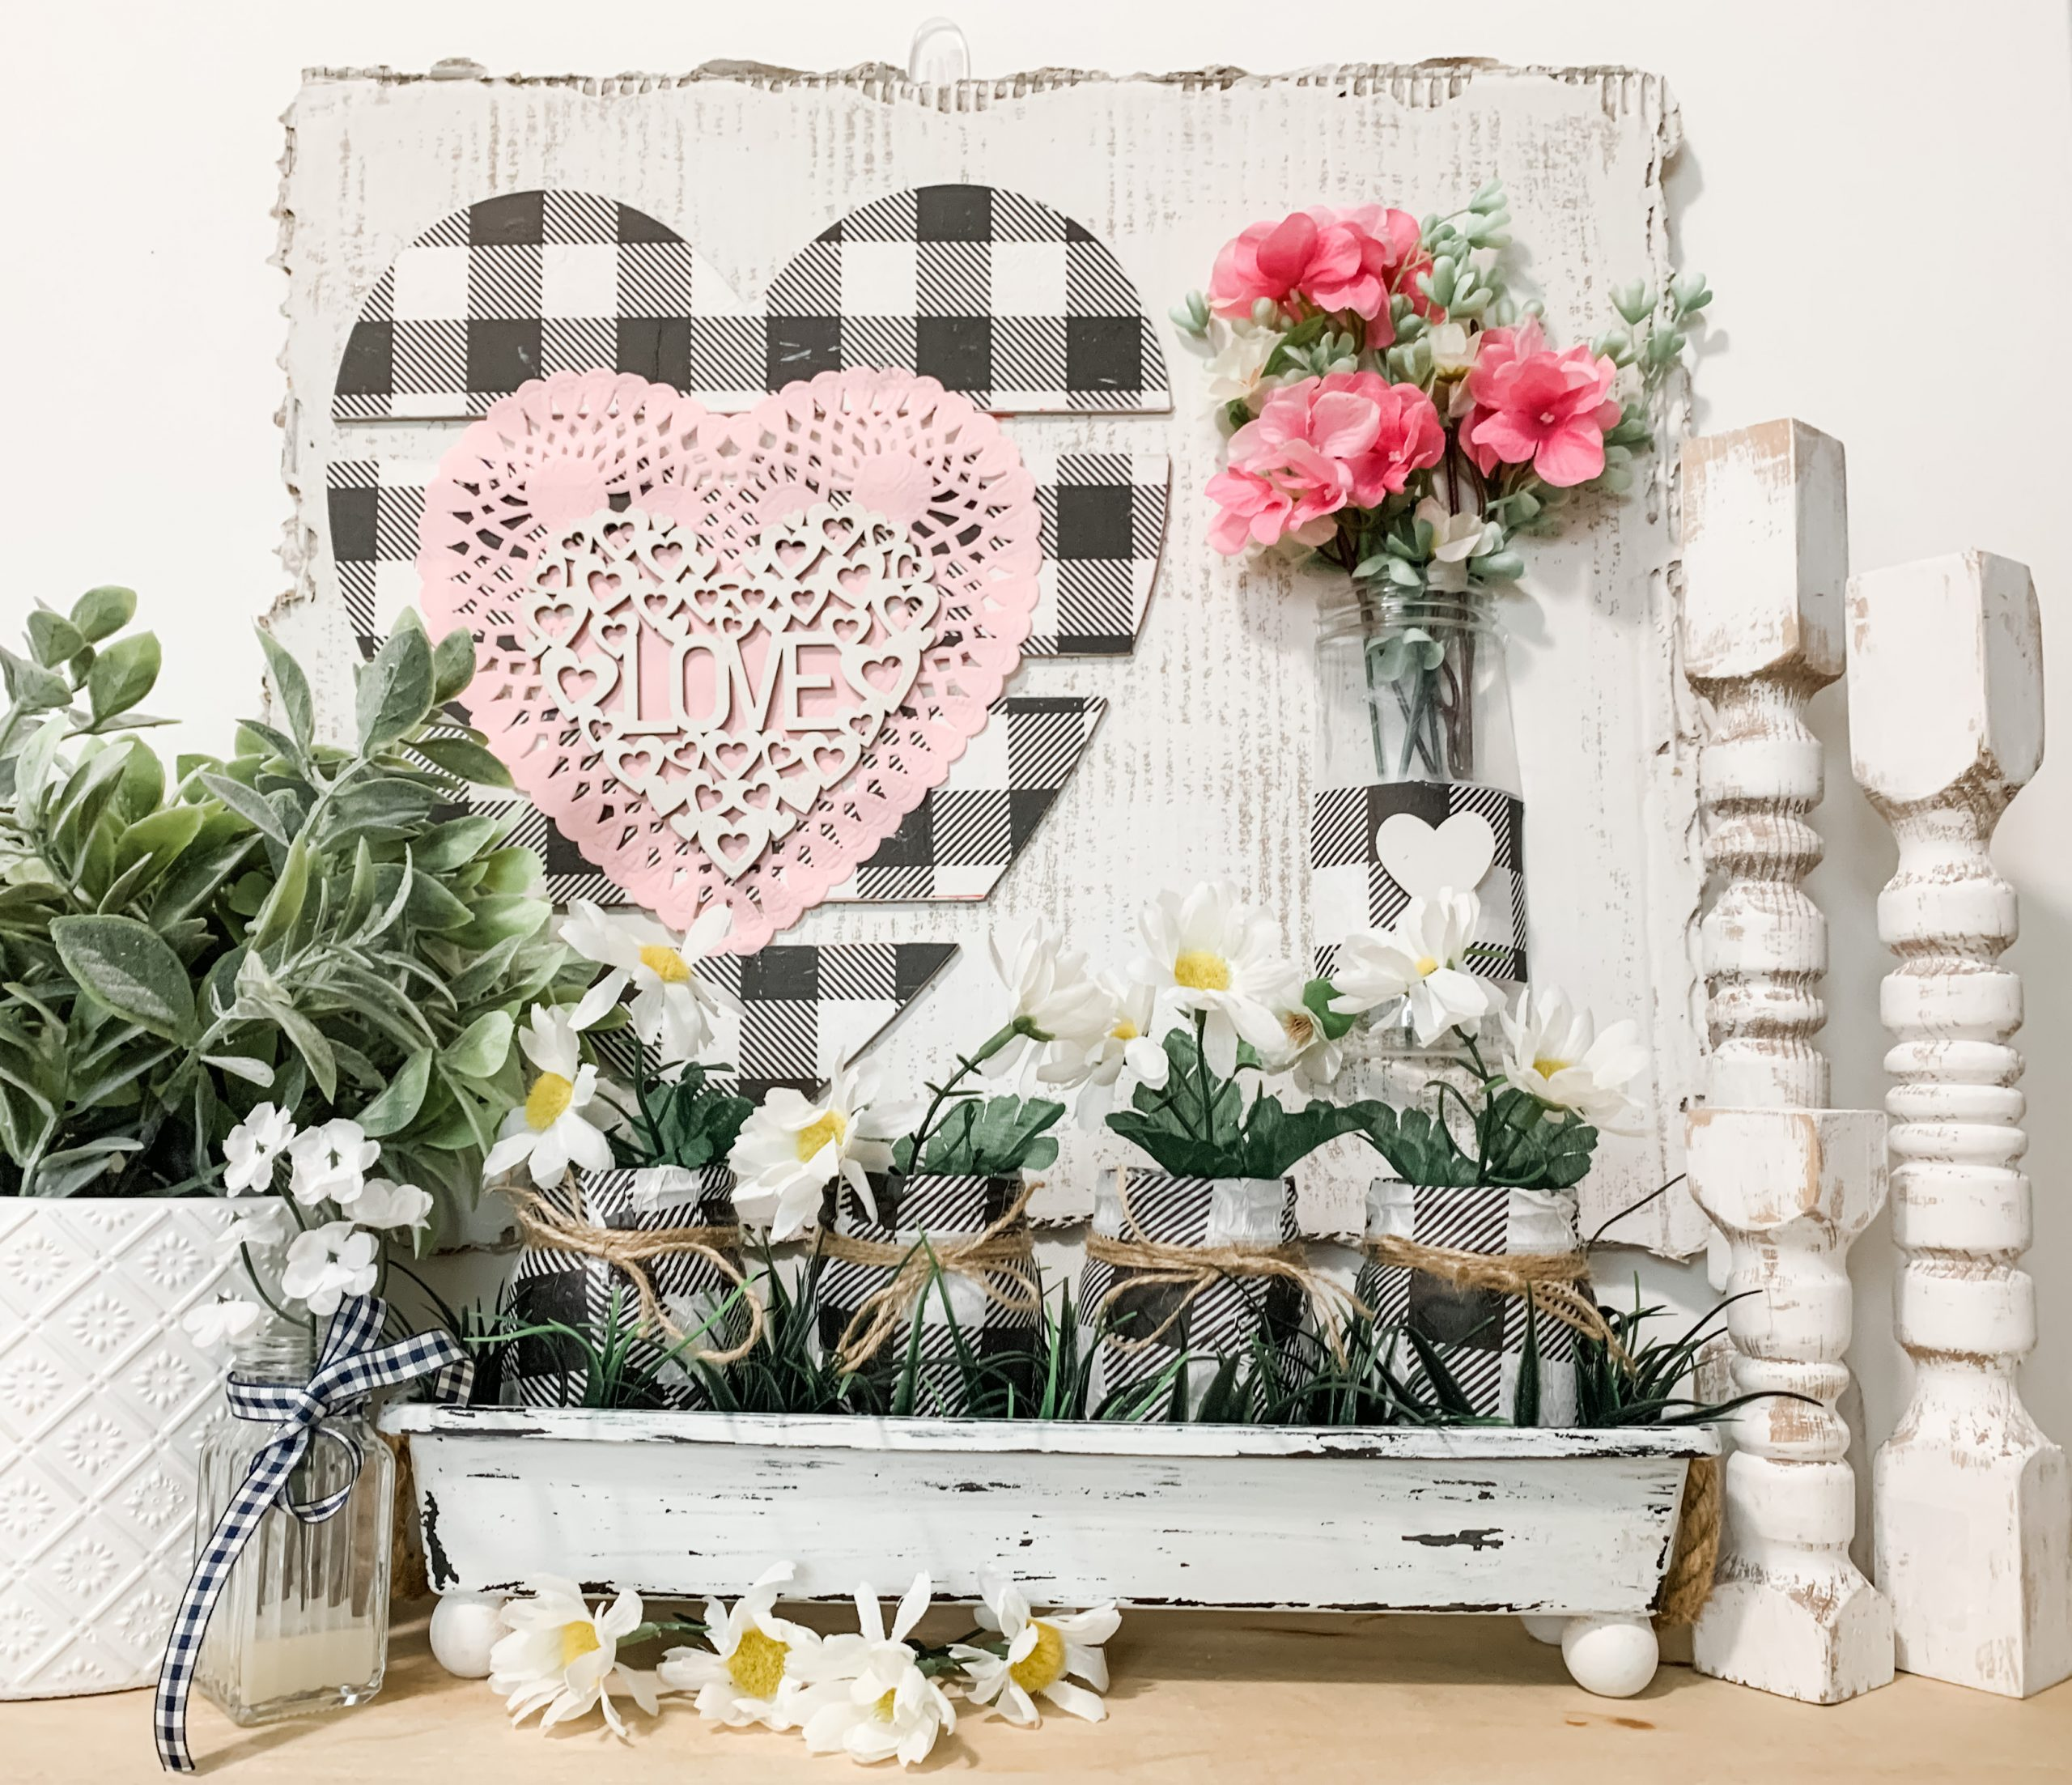 Valentine's Day or Spring Decor with Fake Flowers